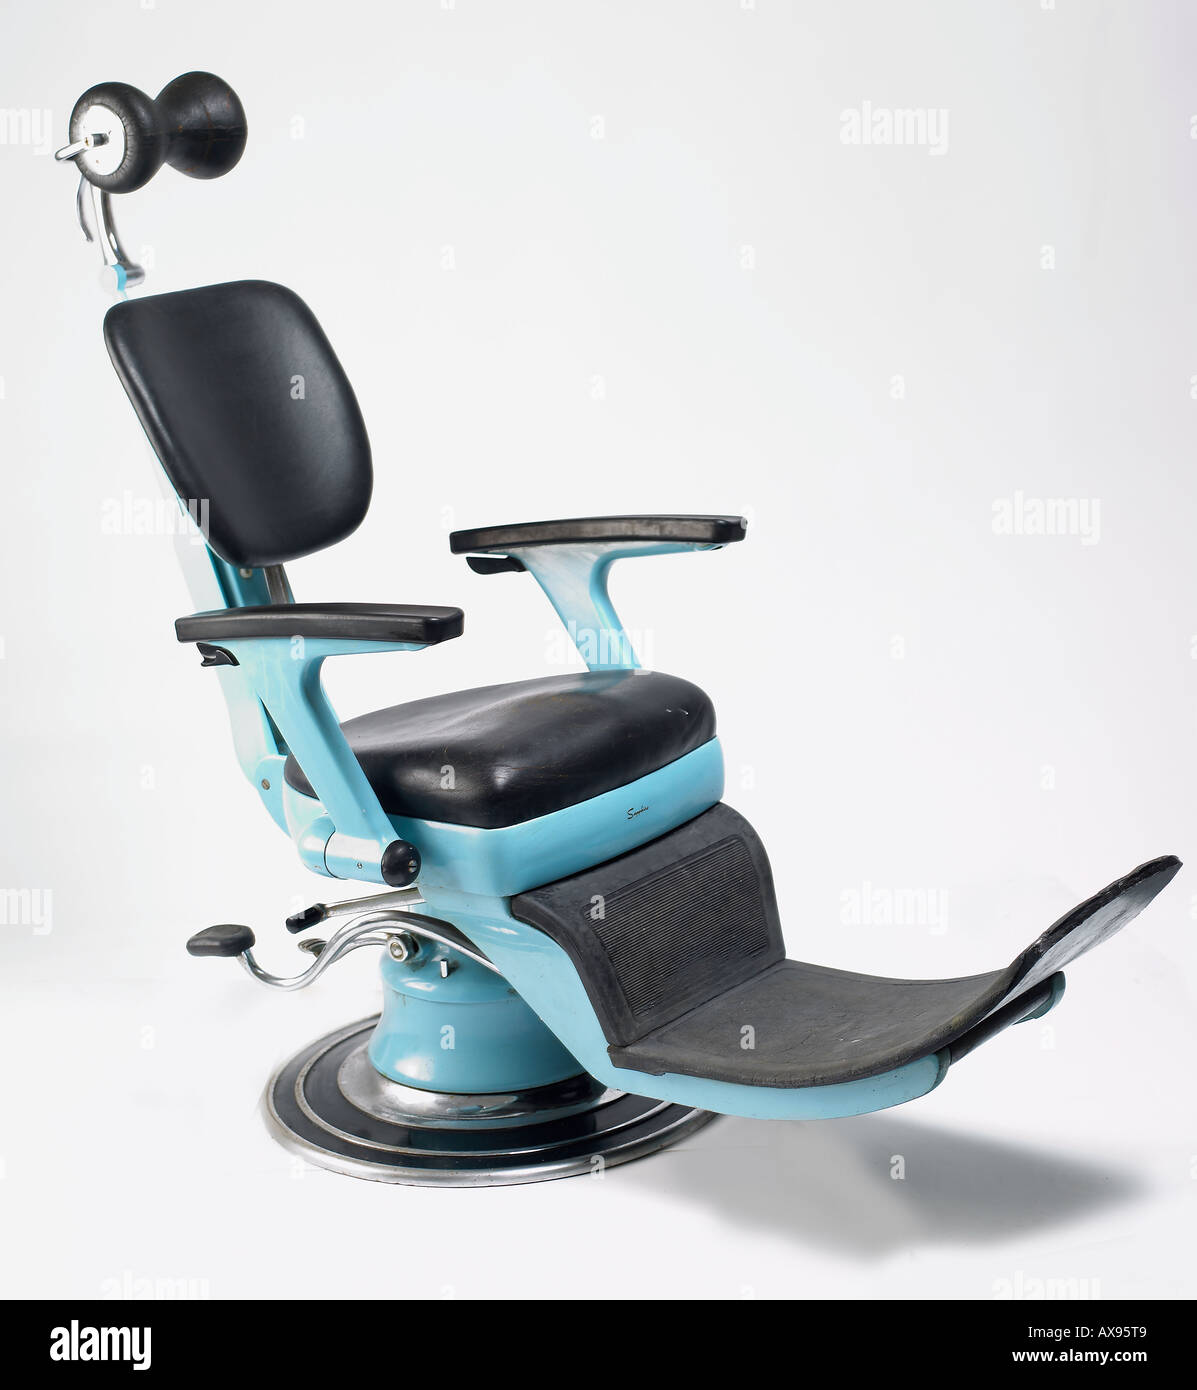 Dentist Chair 1950 S Stock Photo Royalty Free Image